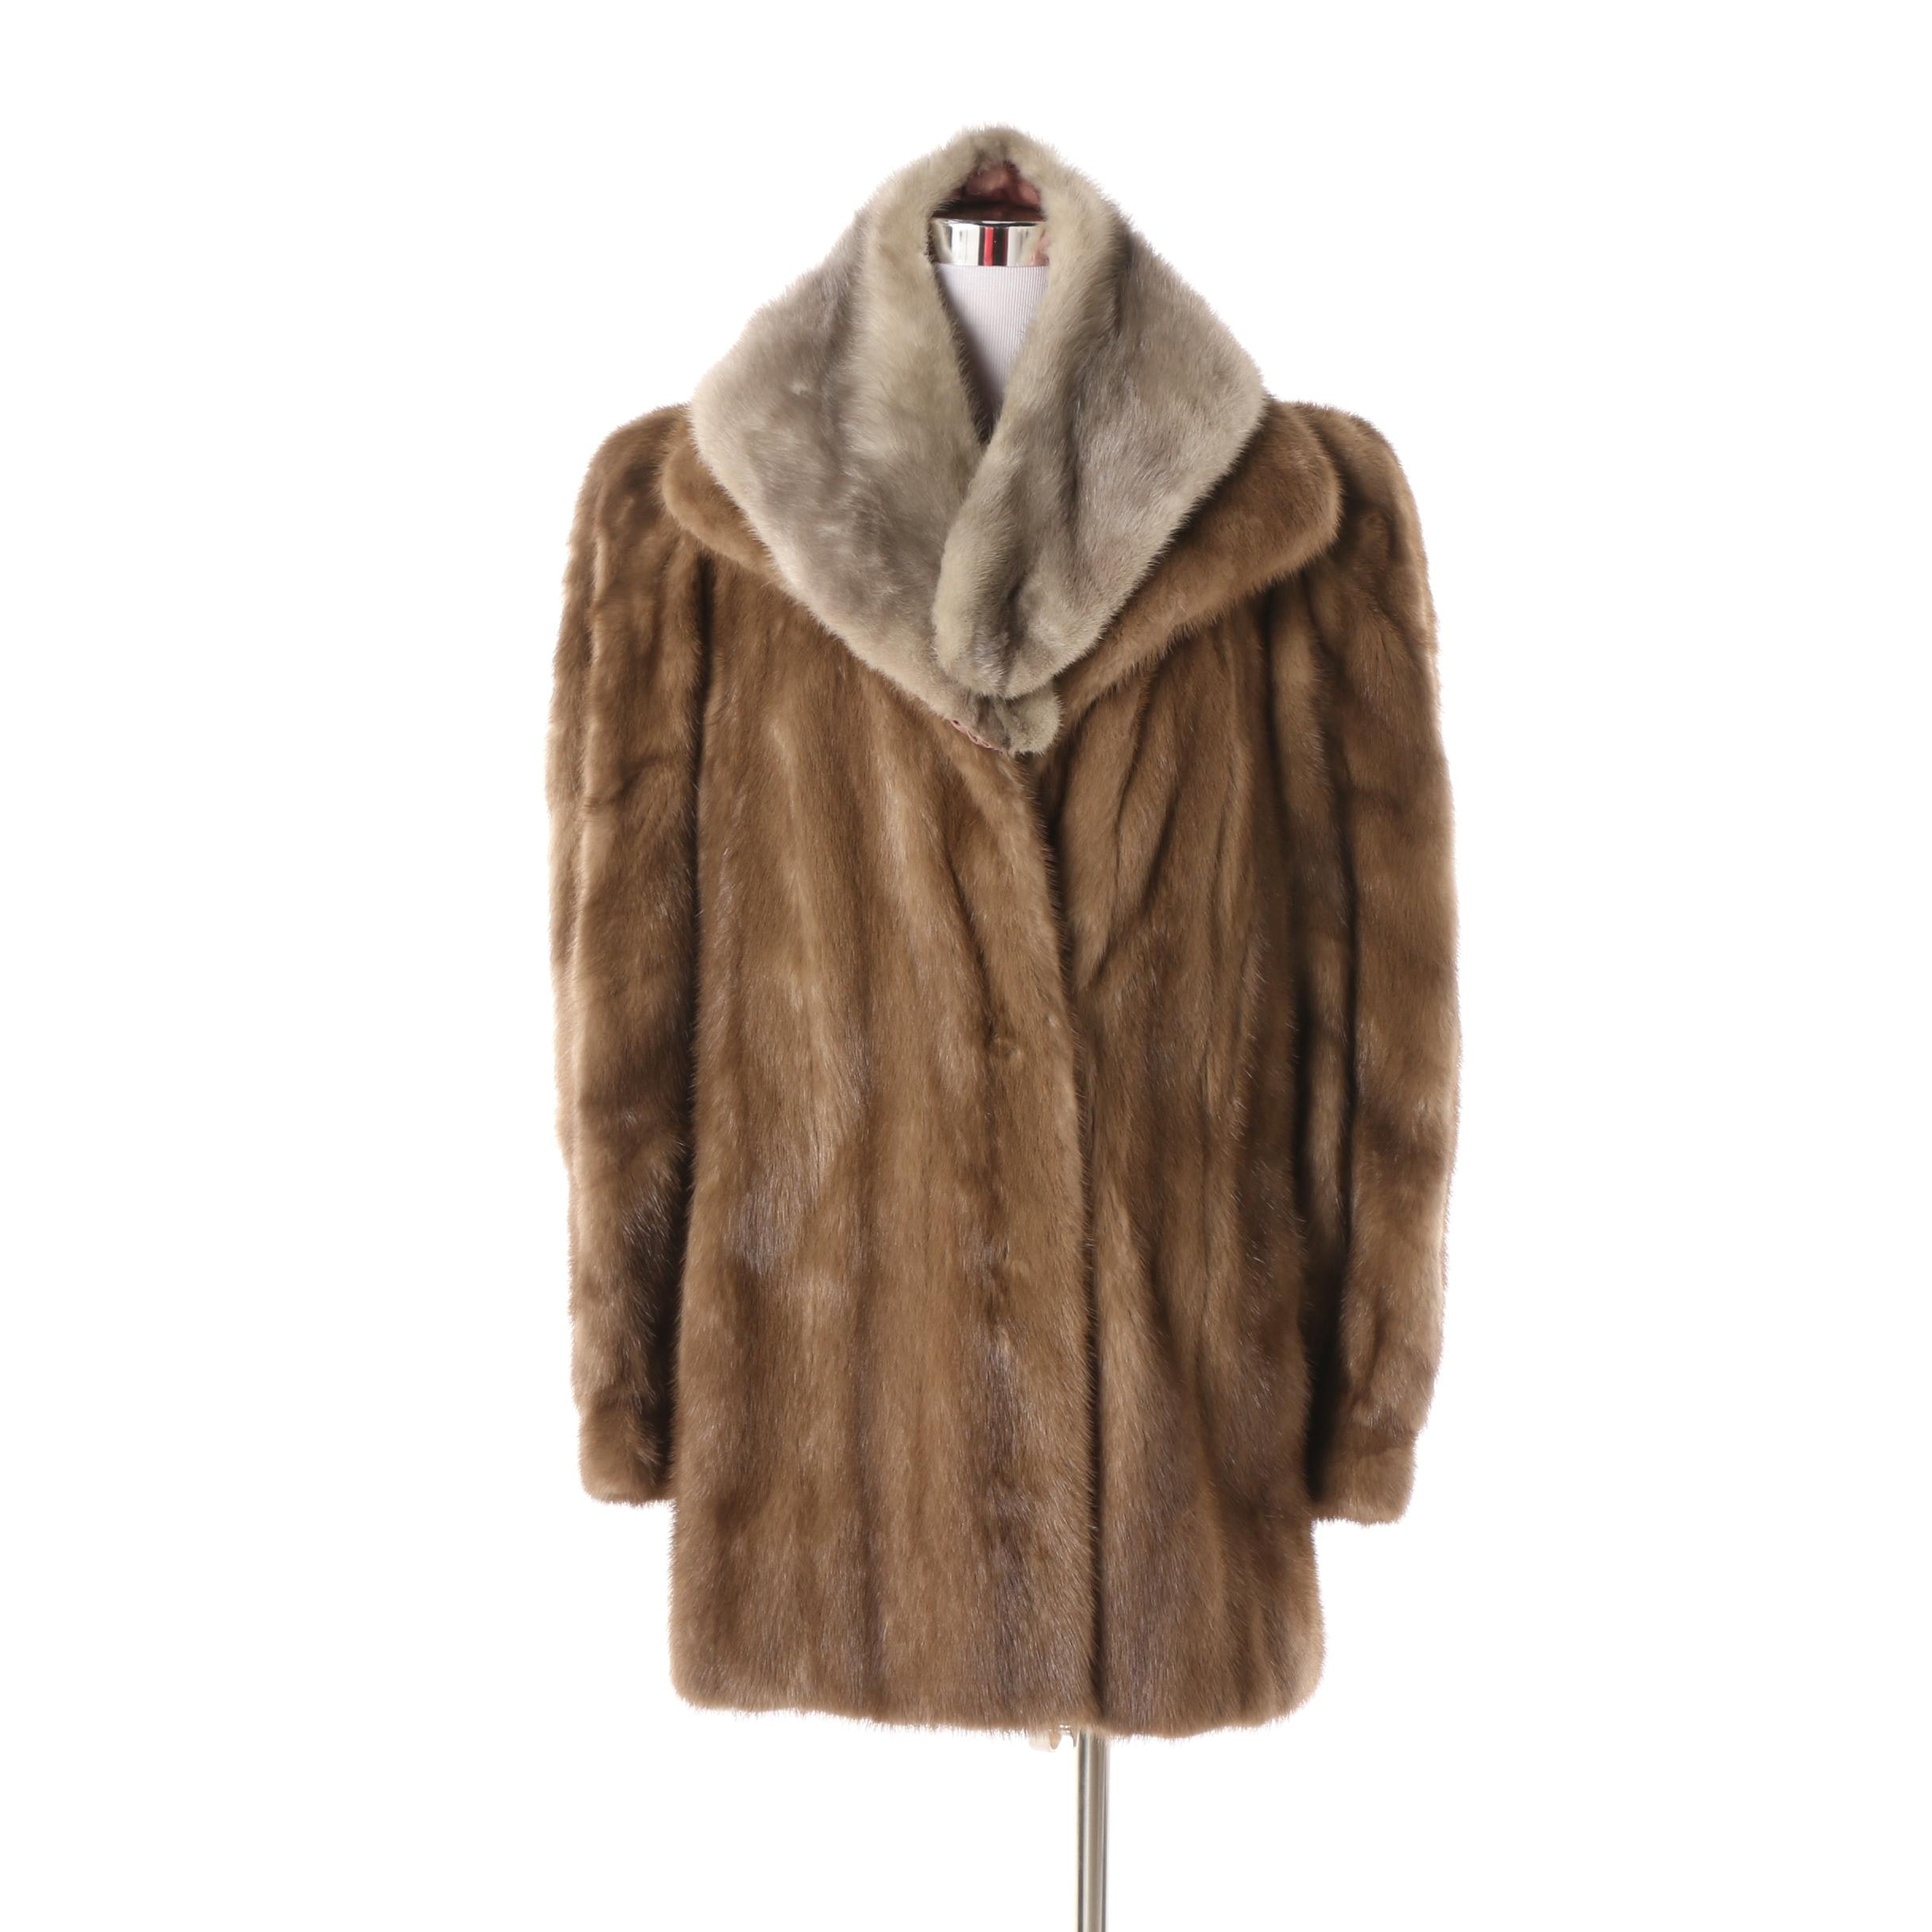 Vintage Goldwaters Mink Fur Coat with Mink Fur Collar